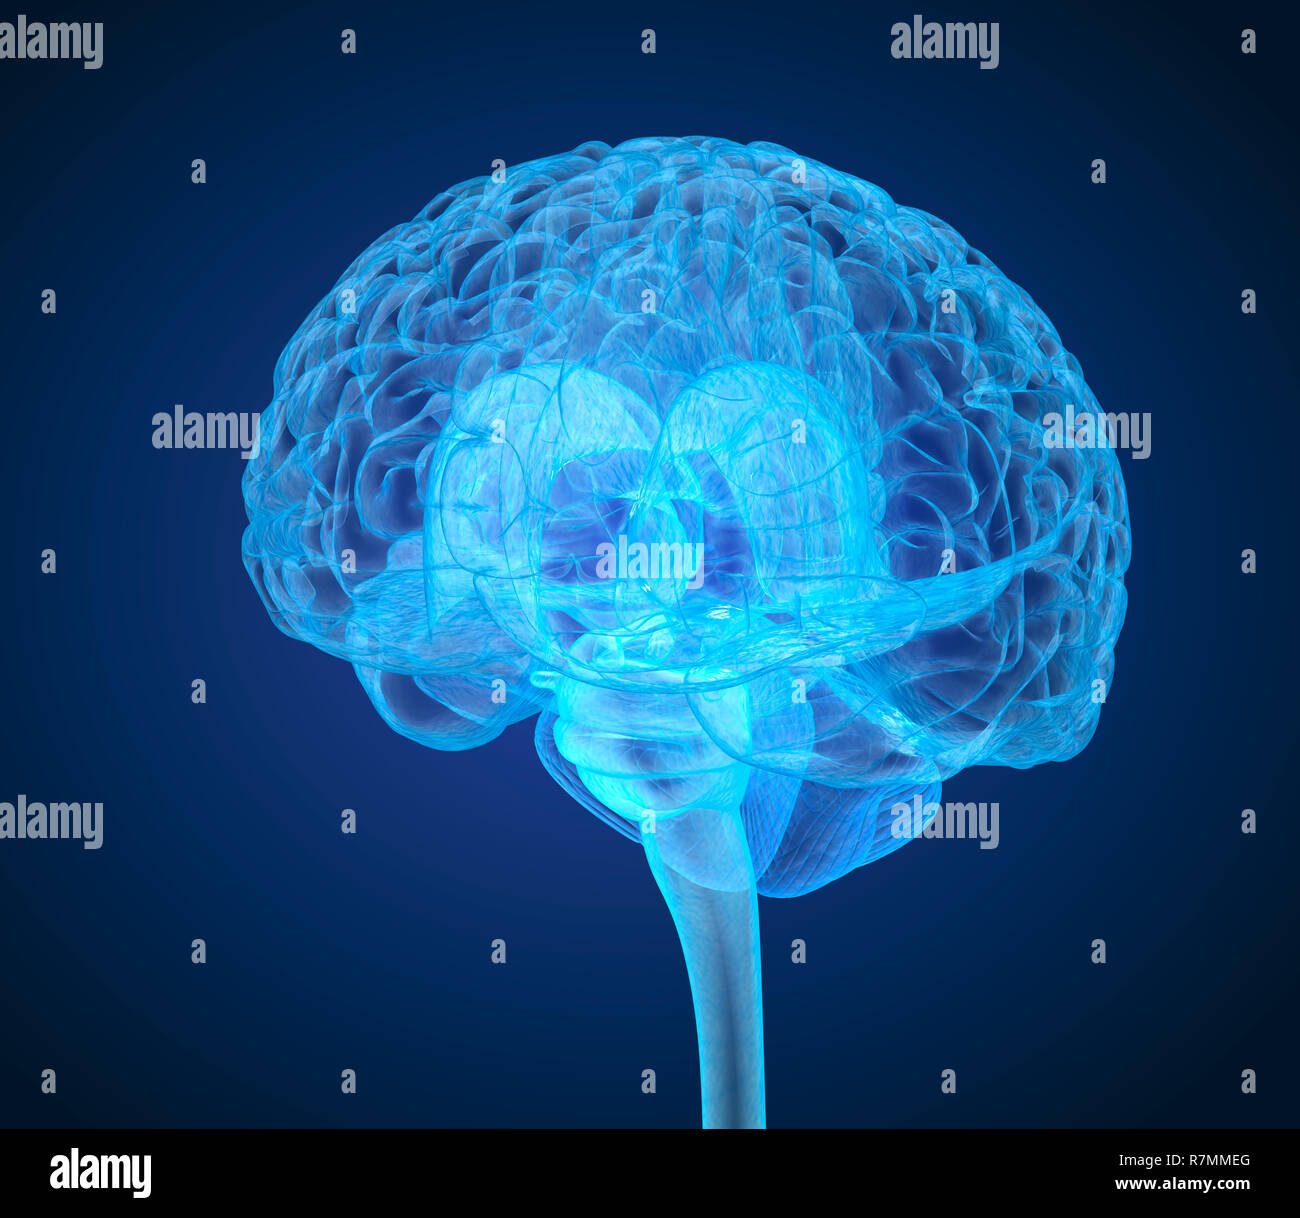 Human brain X-ray scan , Medically accurate 3D illustration - Stock Image